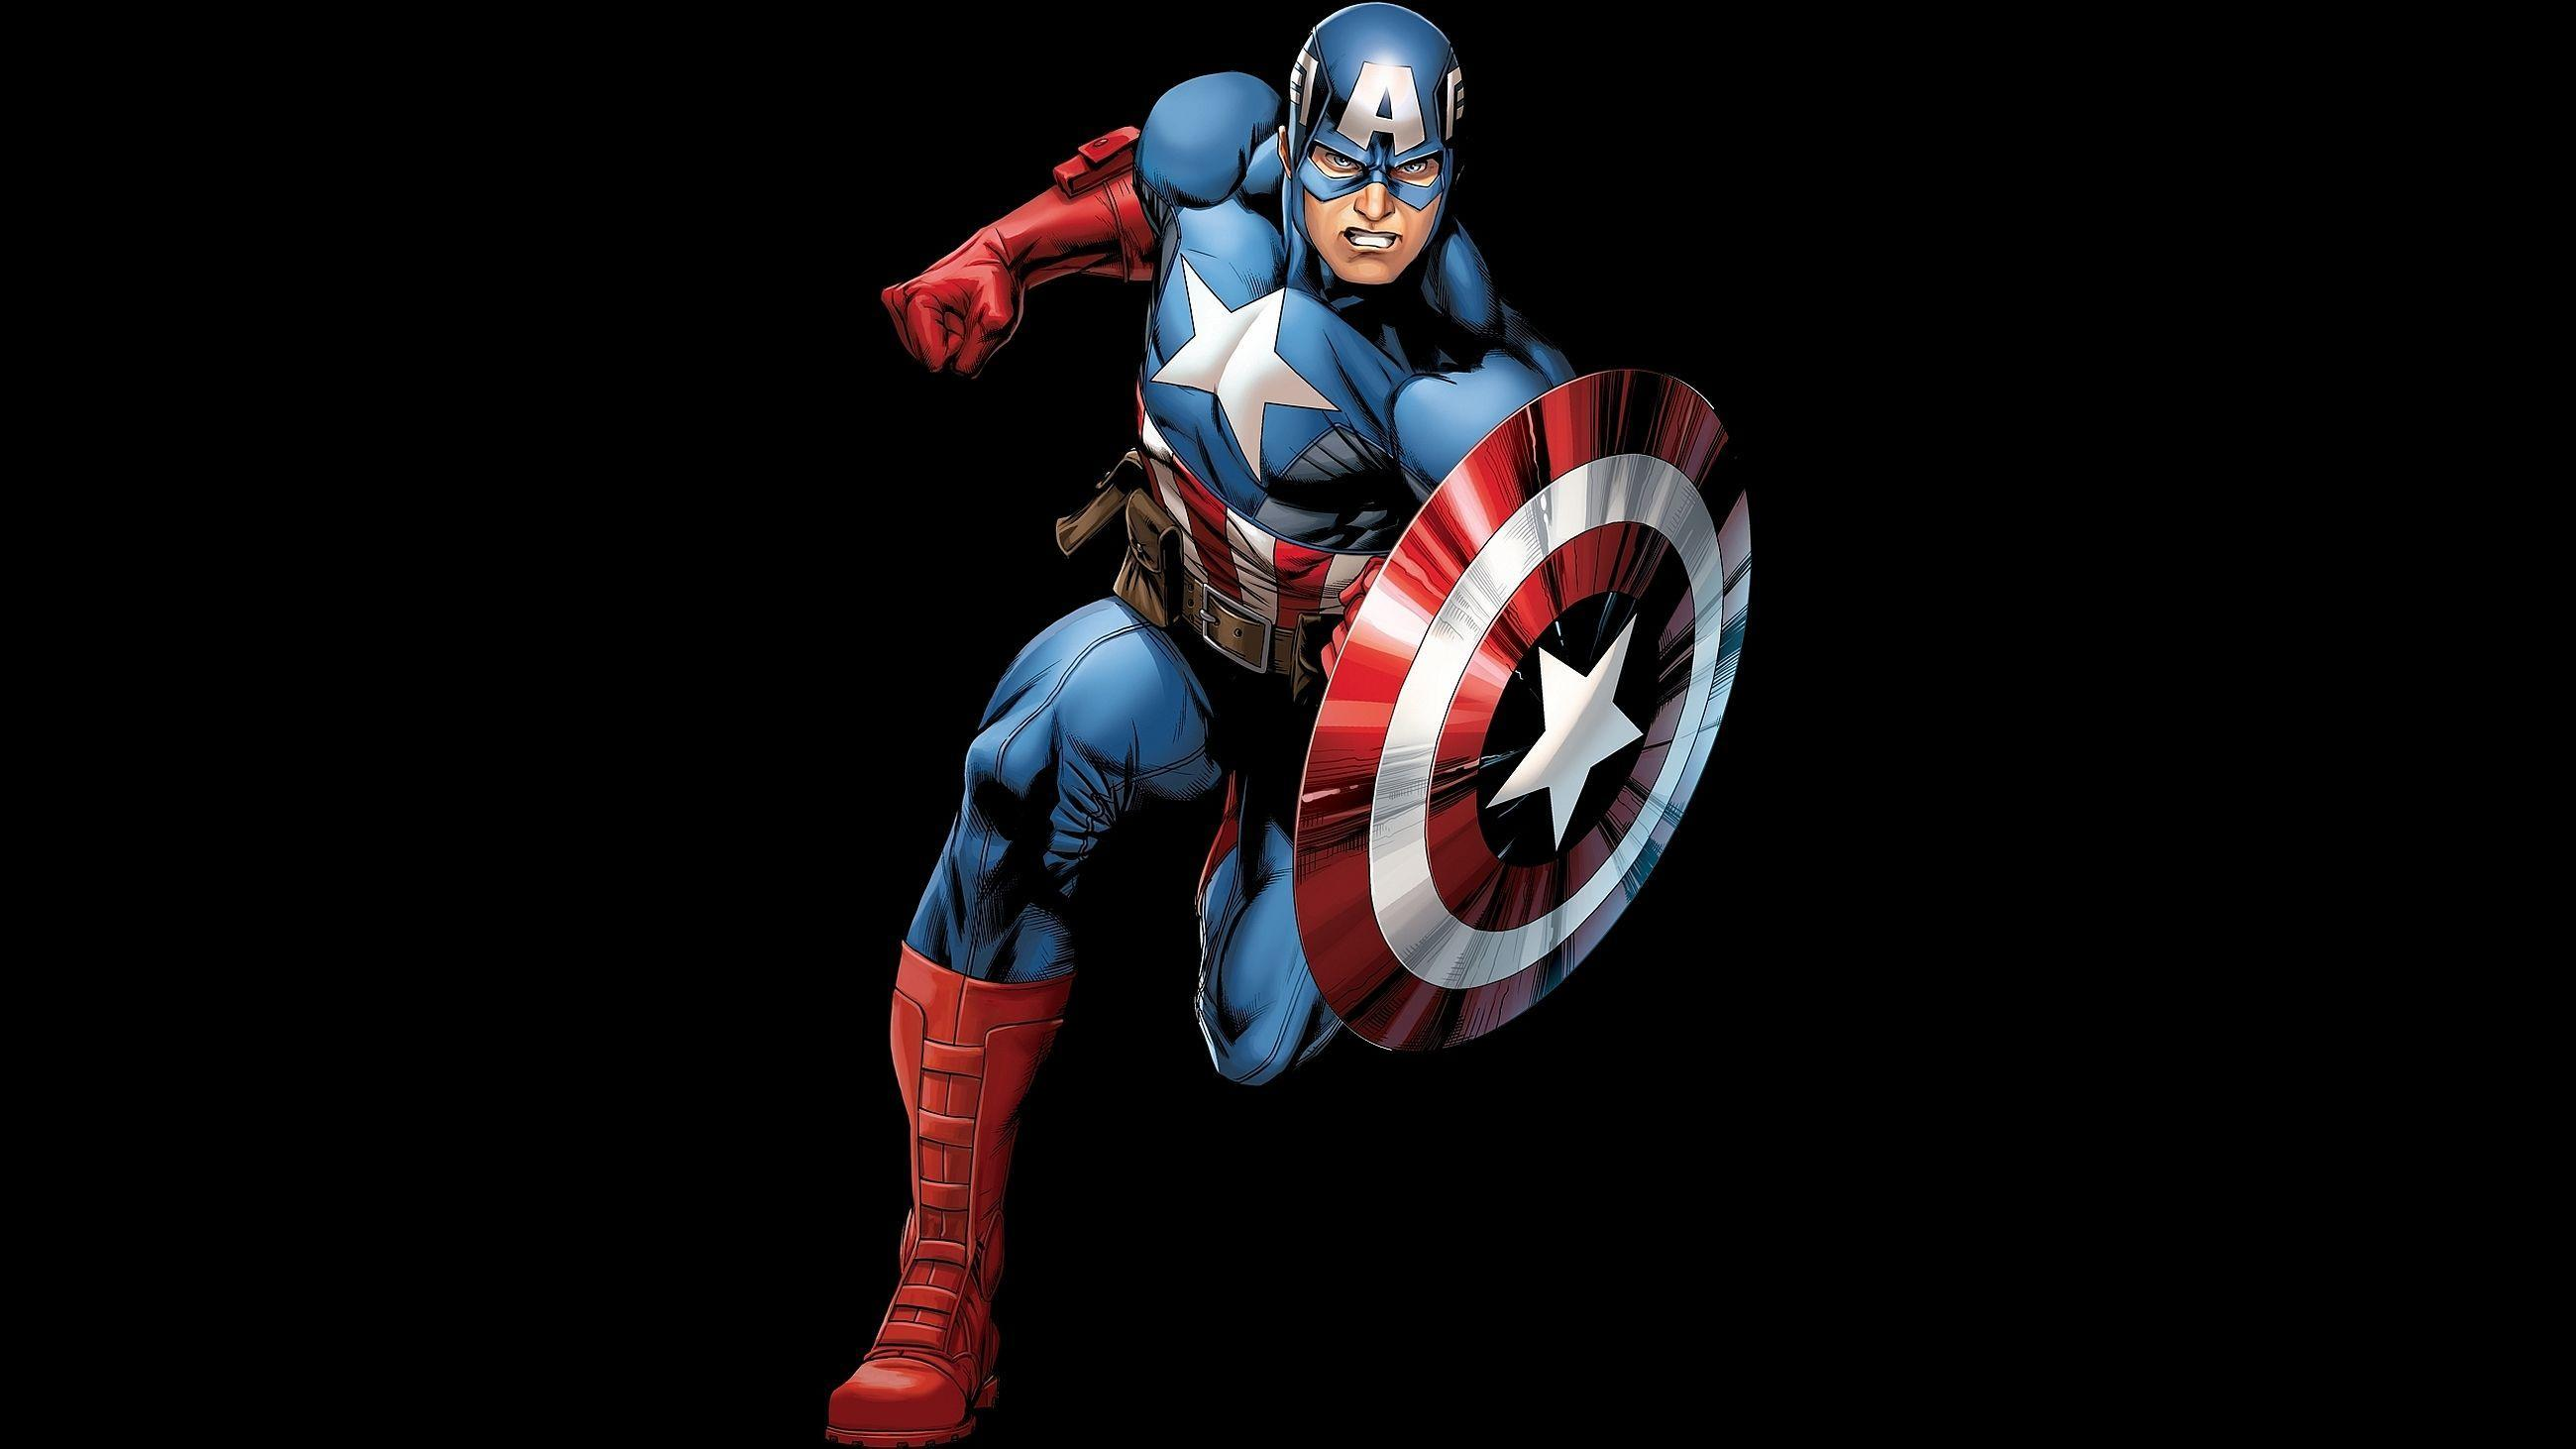 Captain America Wallpaper Hd Mobile